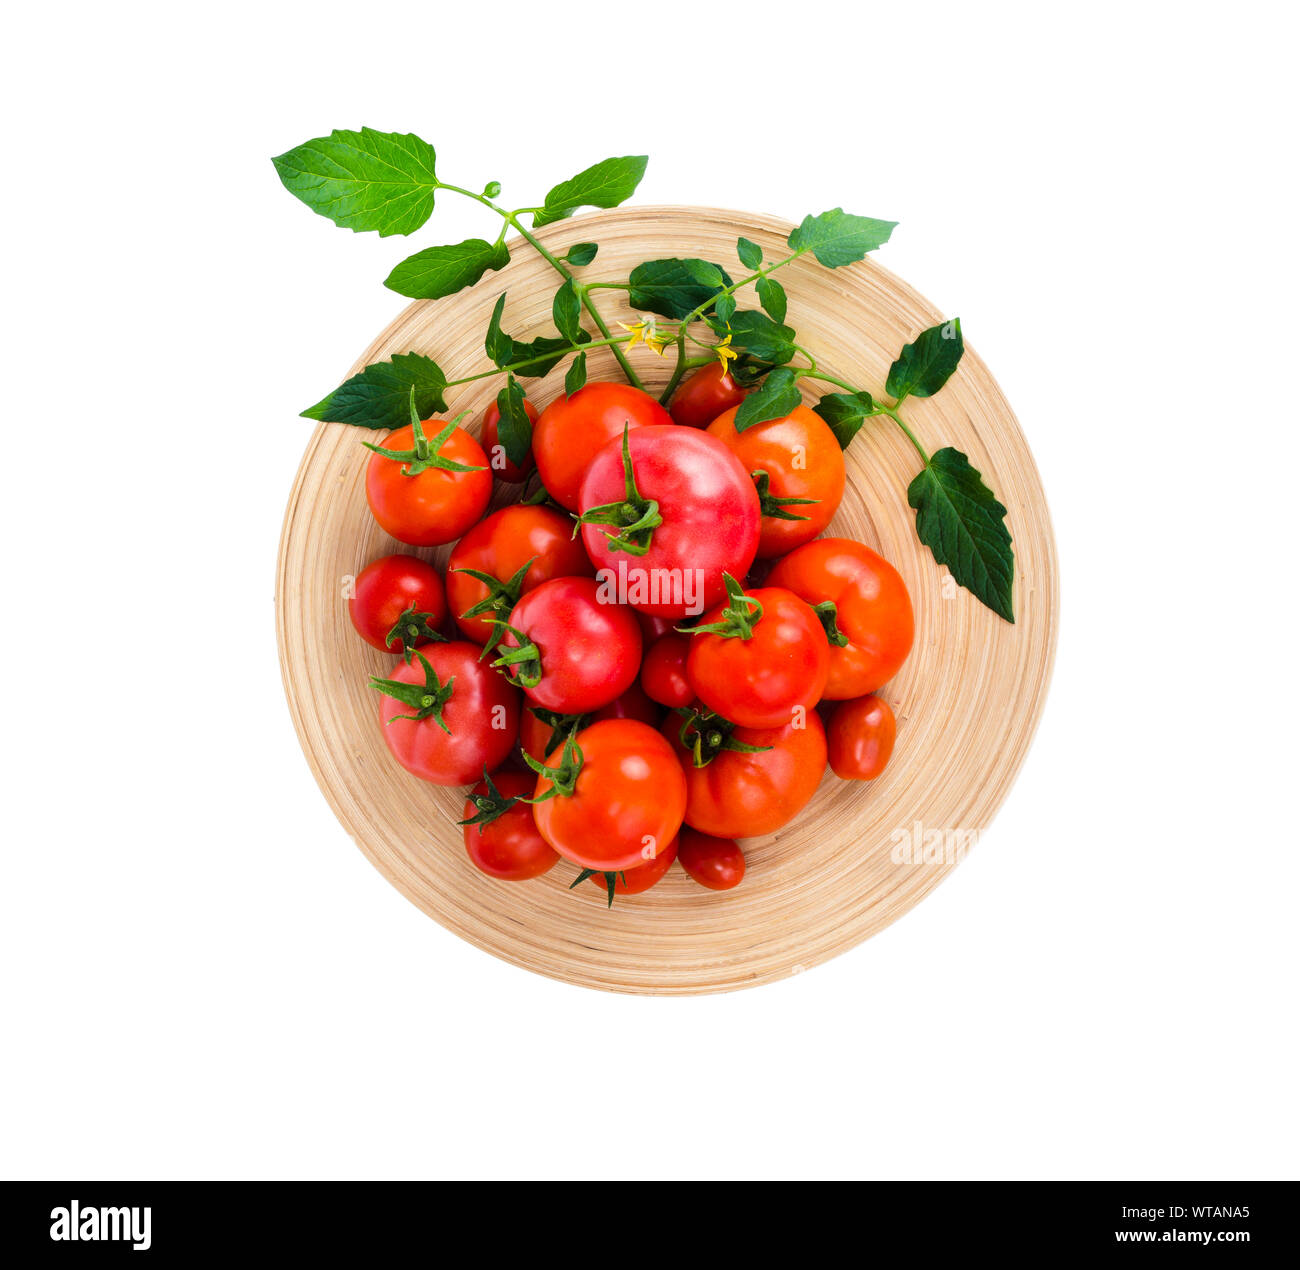 Wooden dish with different ripe tomatoes on white background. Studio Photo Stock Photo